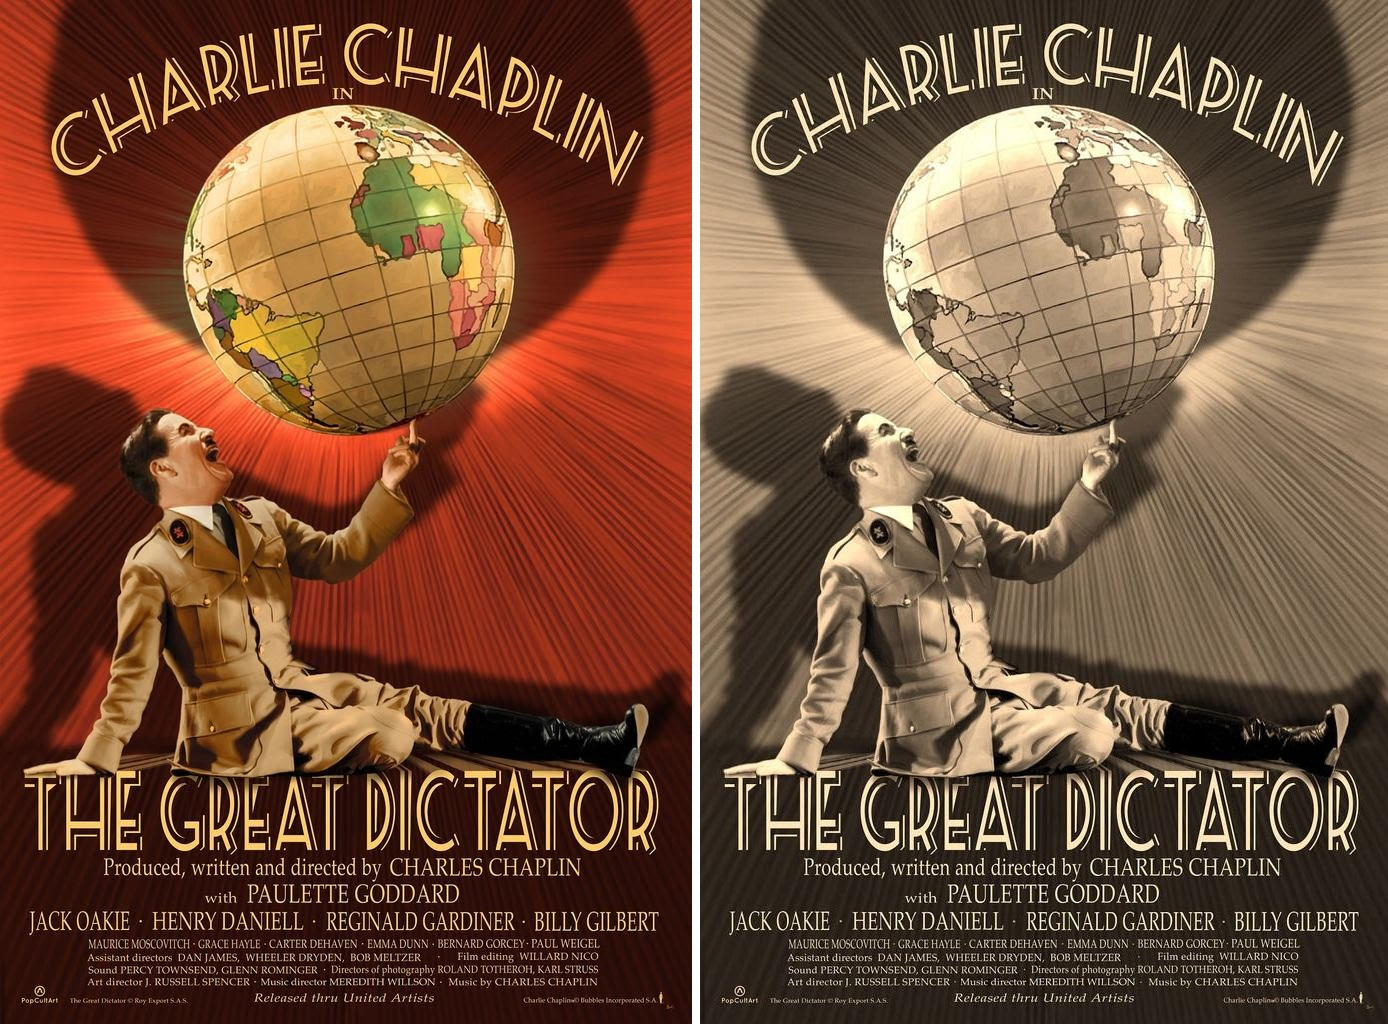 The Blot Says...: Charlie Chaplin's The Great Dictator ...